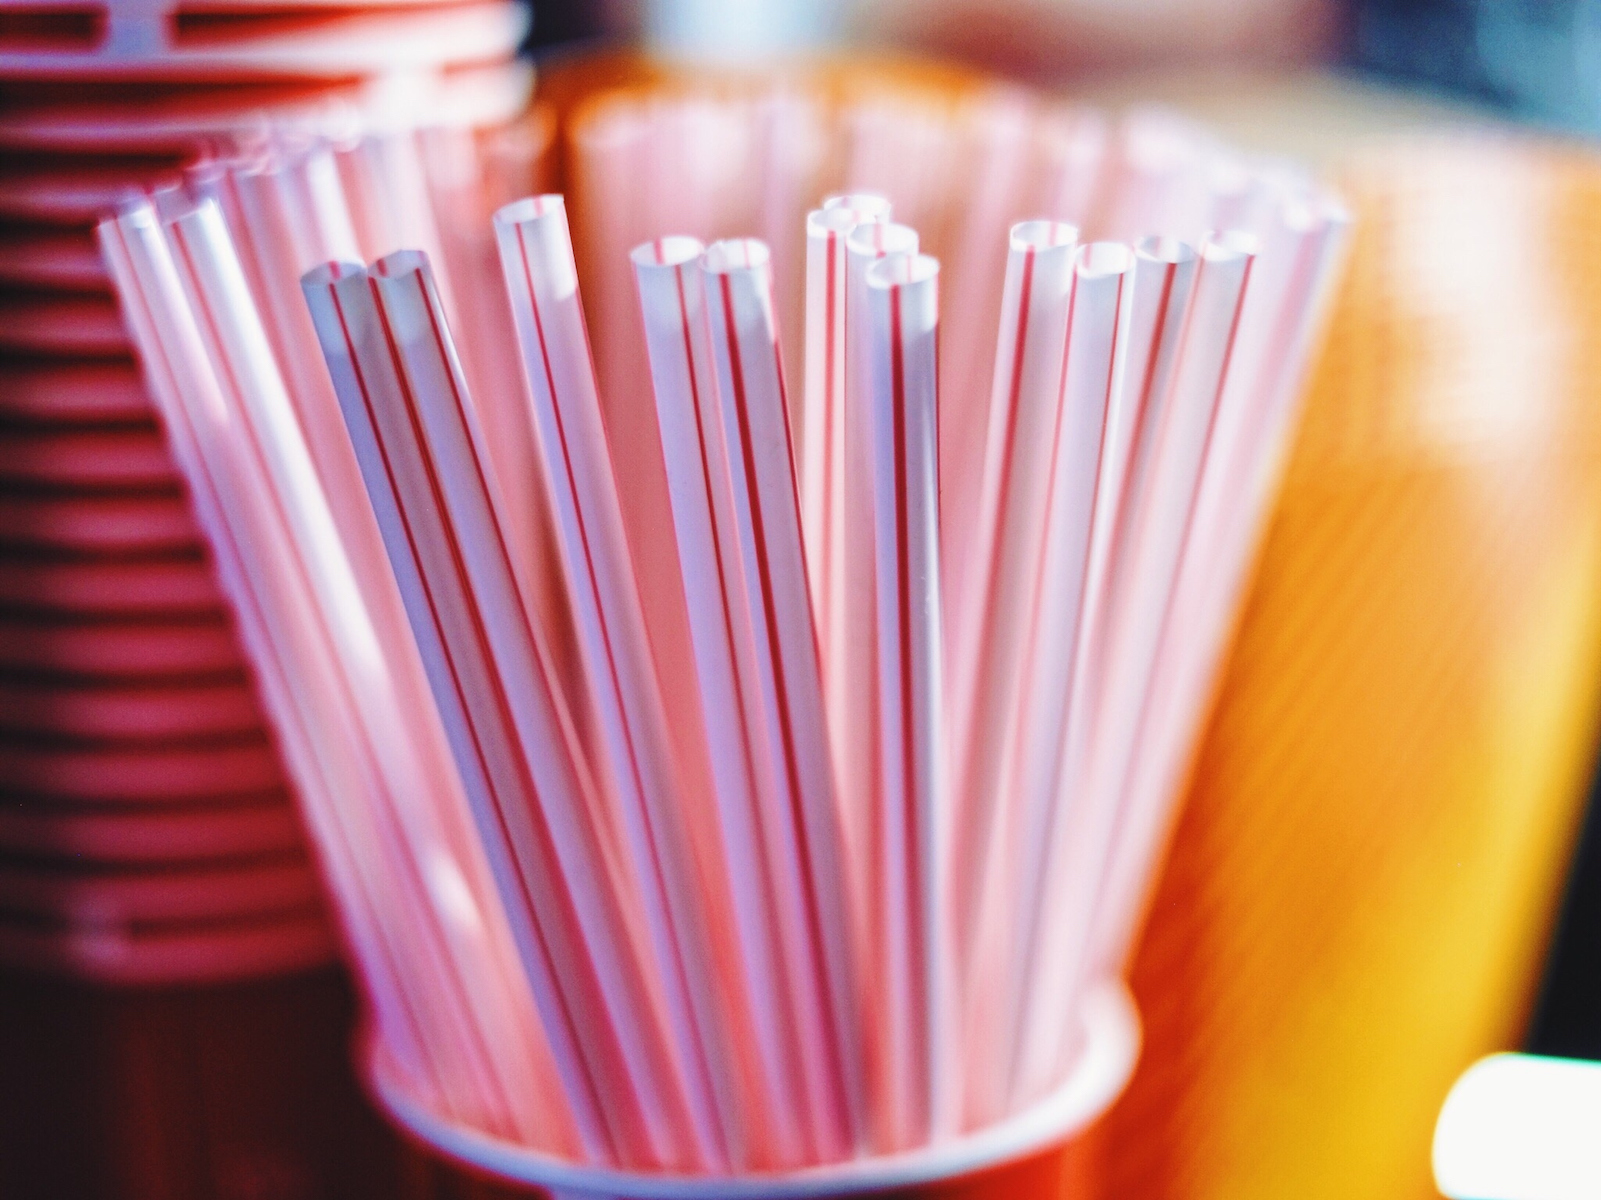 McDonald's to Test Non-Plastic Straws in U.S. Locations